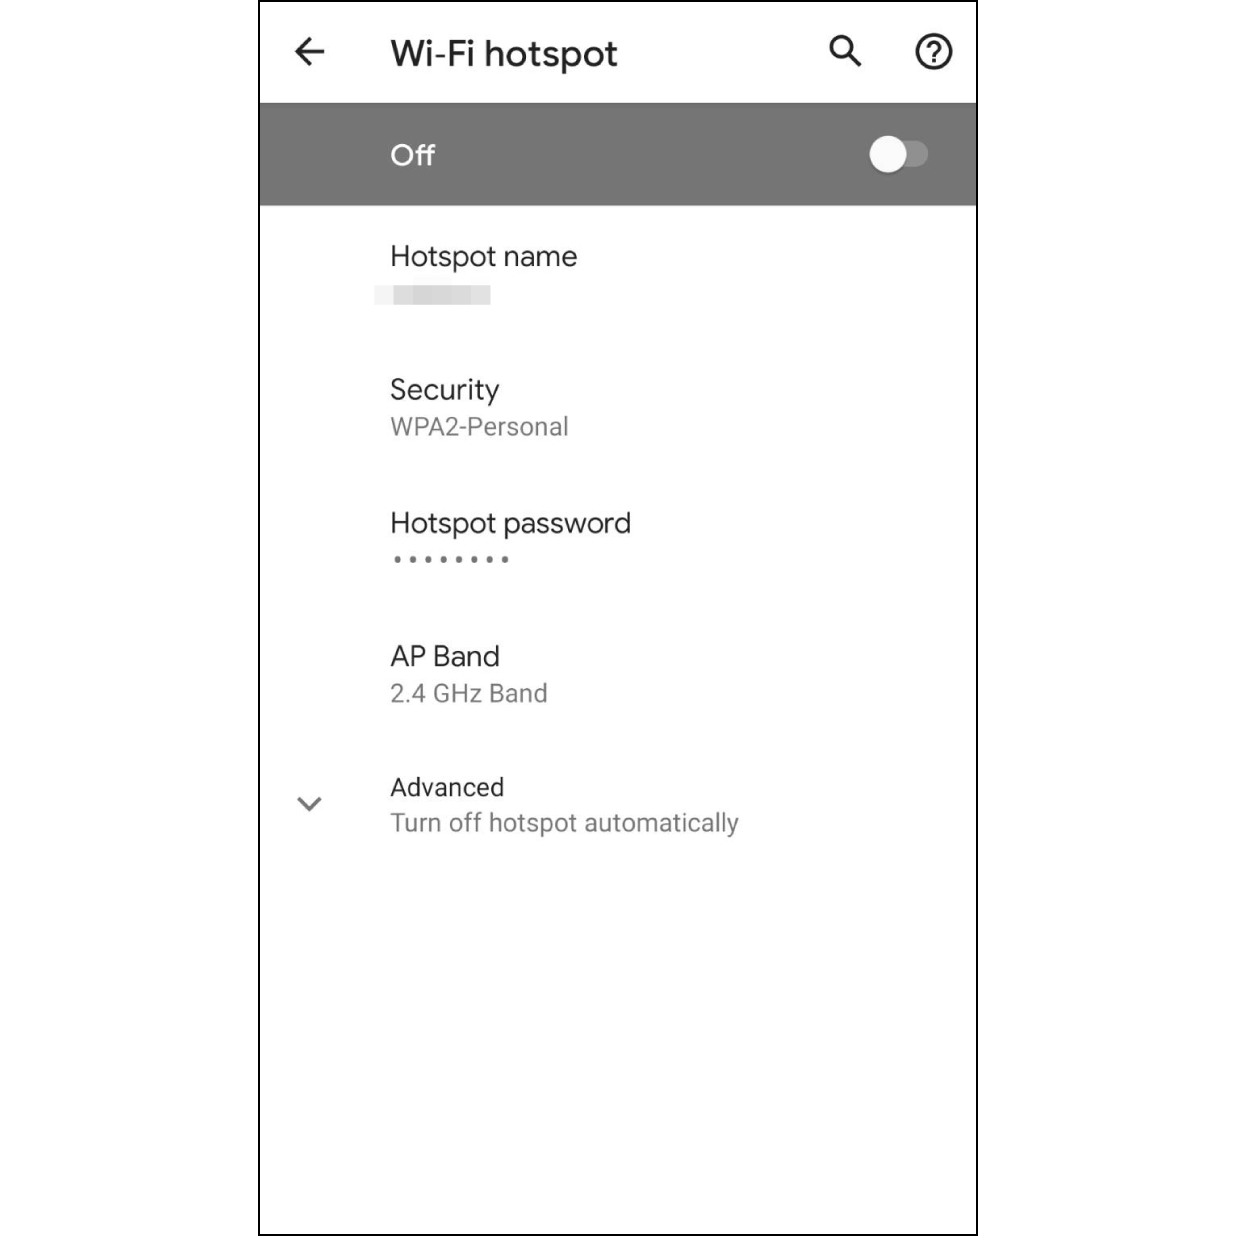 1. Set up Android HotspotGo to settings and set up Android hotspot name and password, then turn off the hotspot for now.(How to set up Android Hotspot)